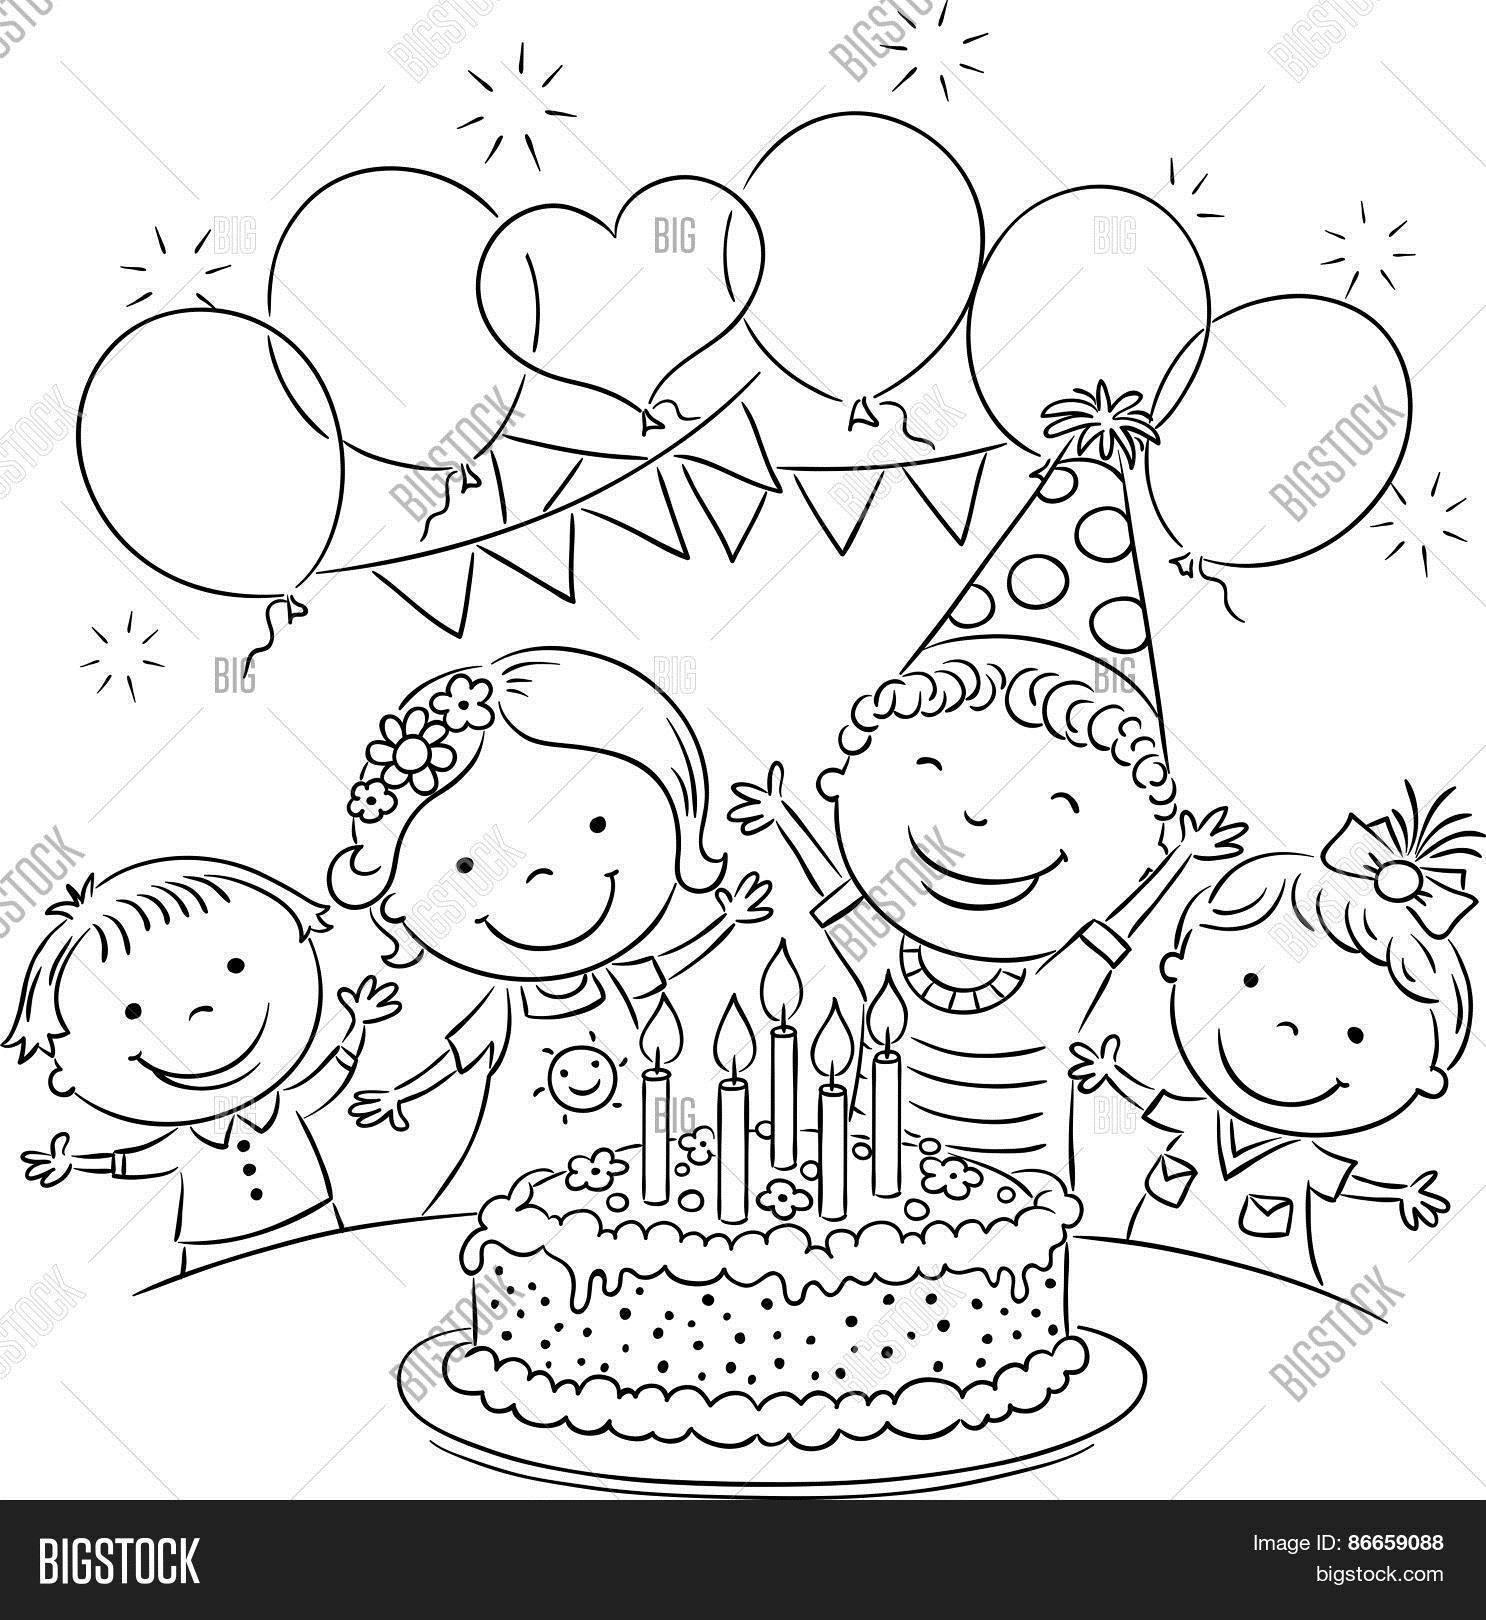 birthday party drawing step by step ; birthday-party-drawing-step-by-step-86659088